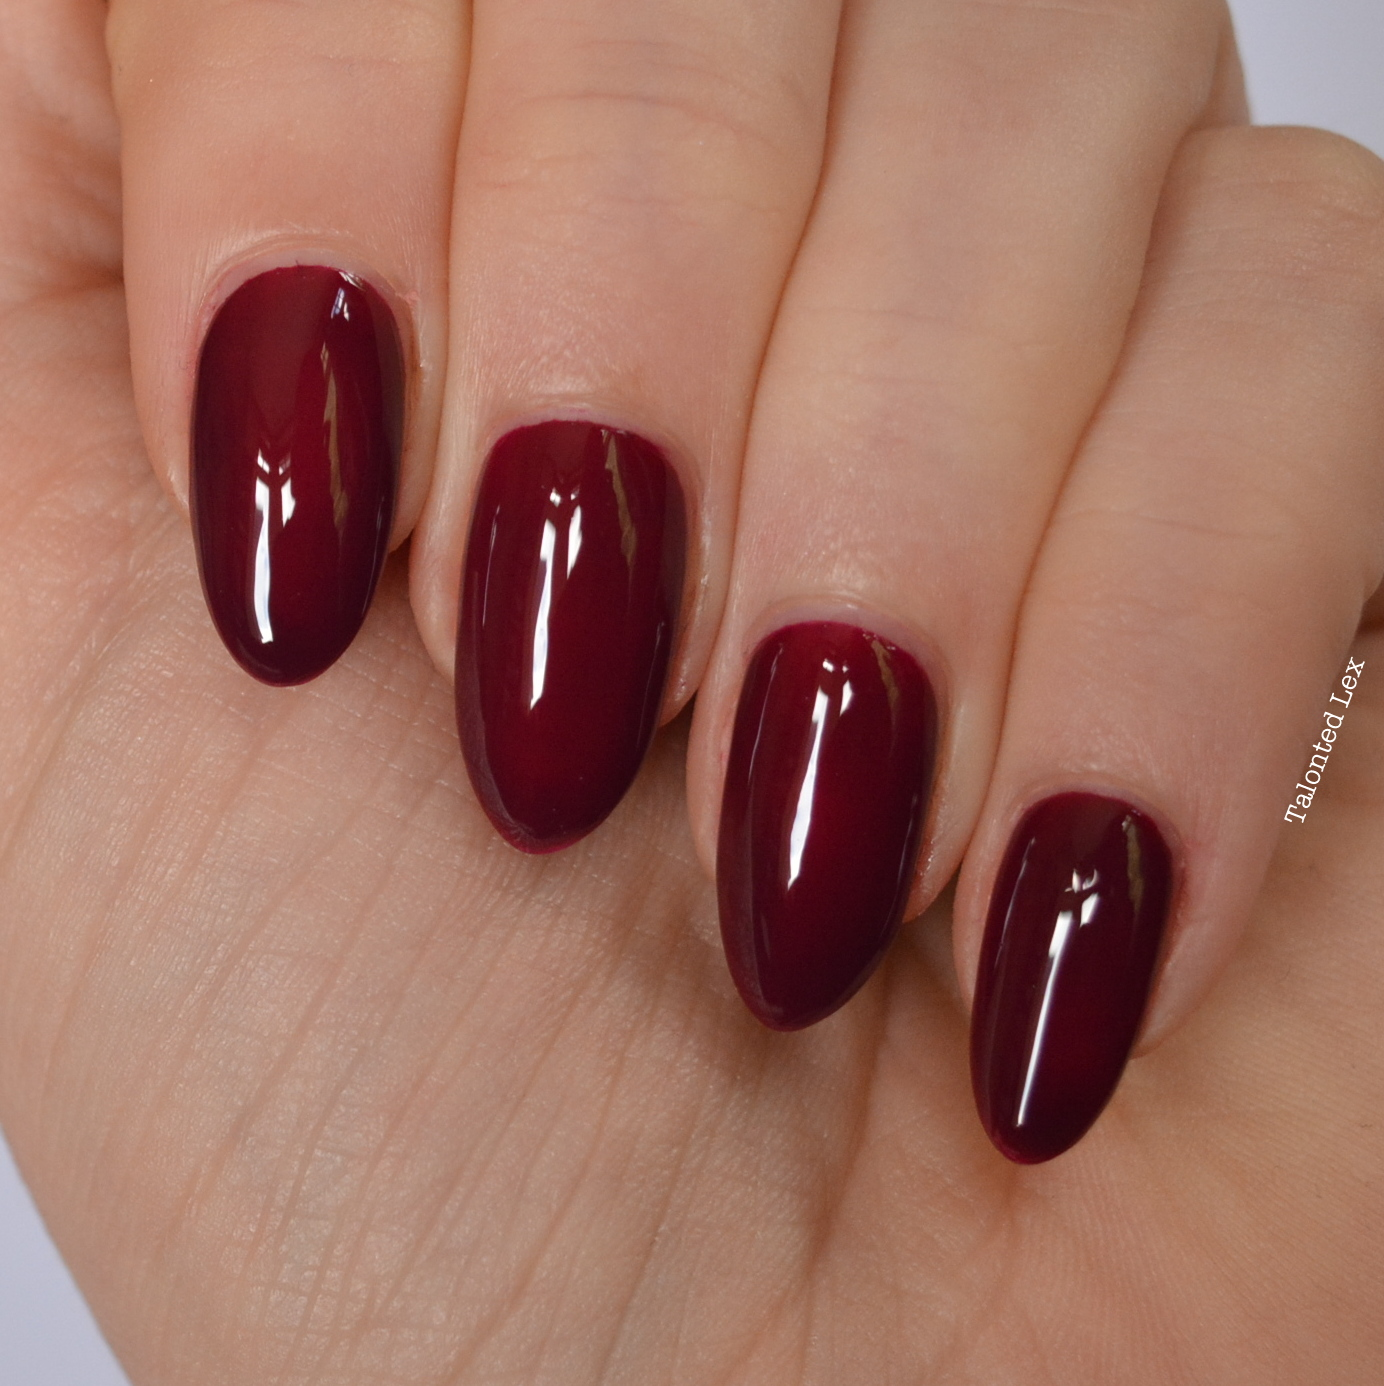 essie-fall-collection-talonted-lex-review-with-swatches-in-the-lobby-4